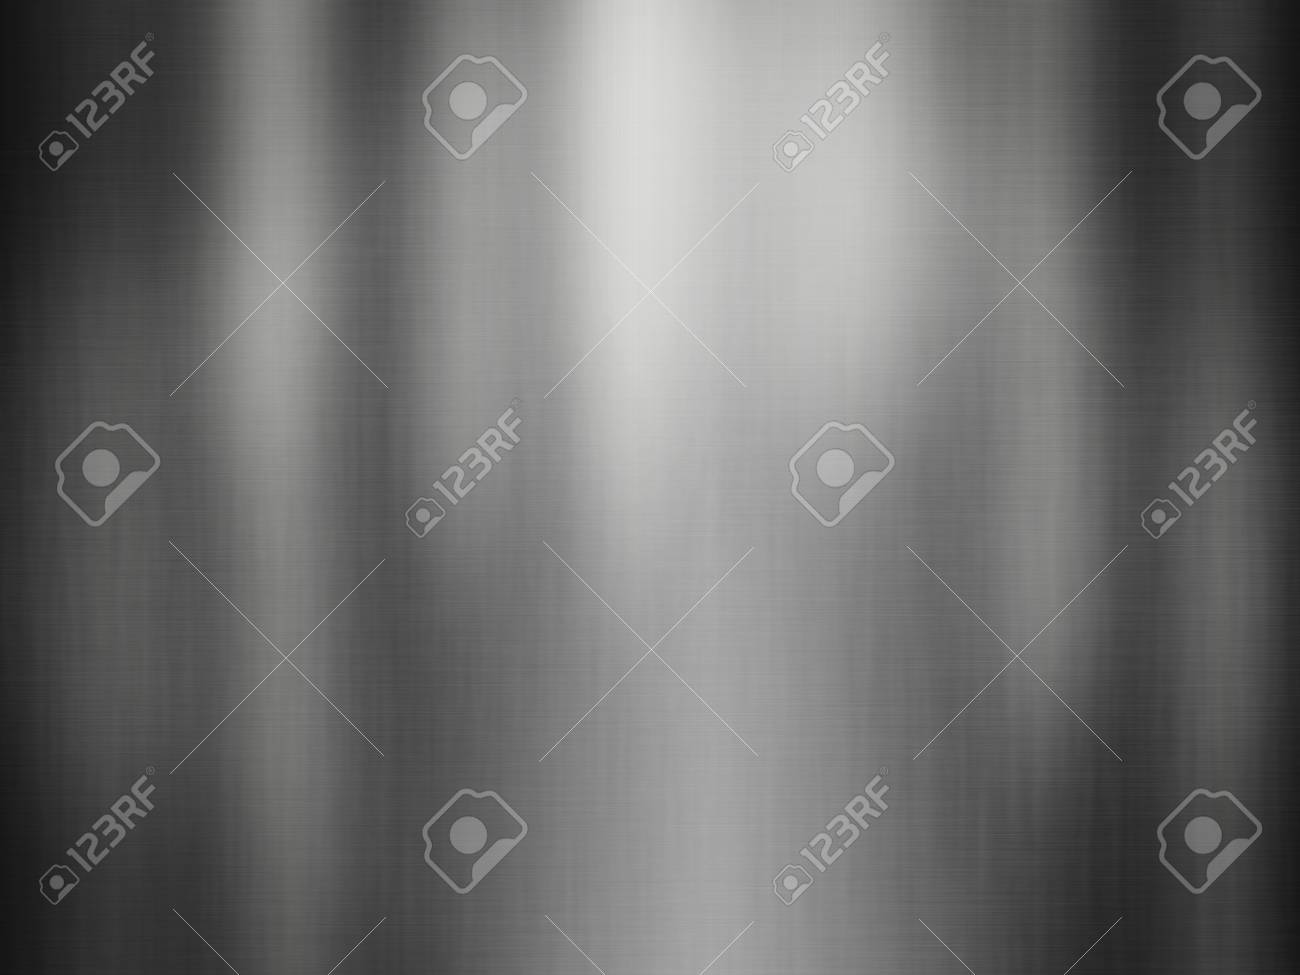 Stainless steel texture or metal texture background Banque d'images - 75076734